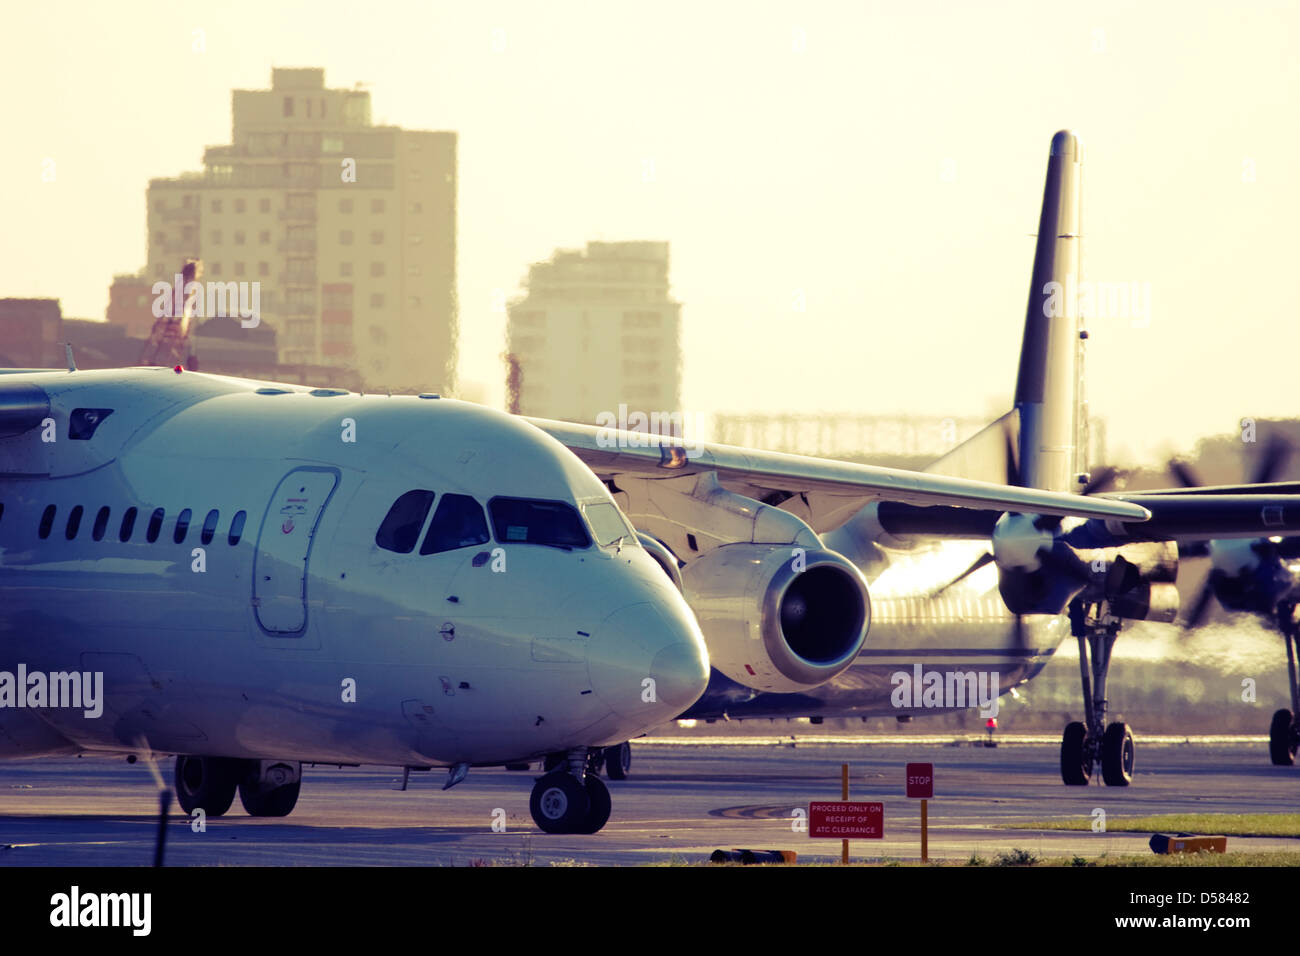 Commercial planes taxiing. - Stock Image